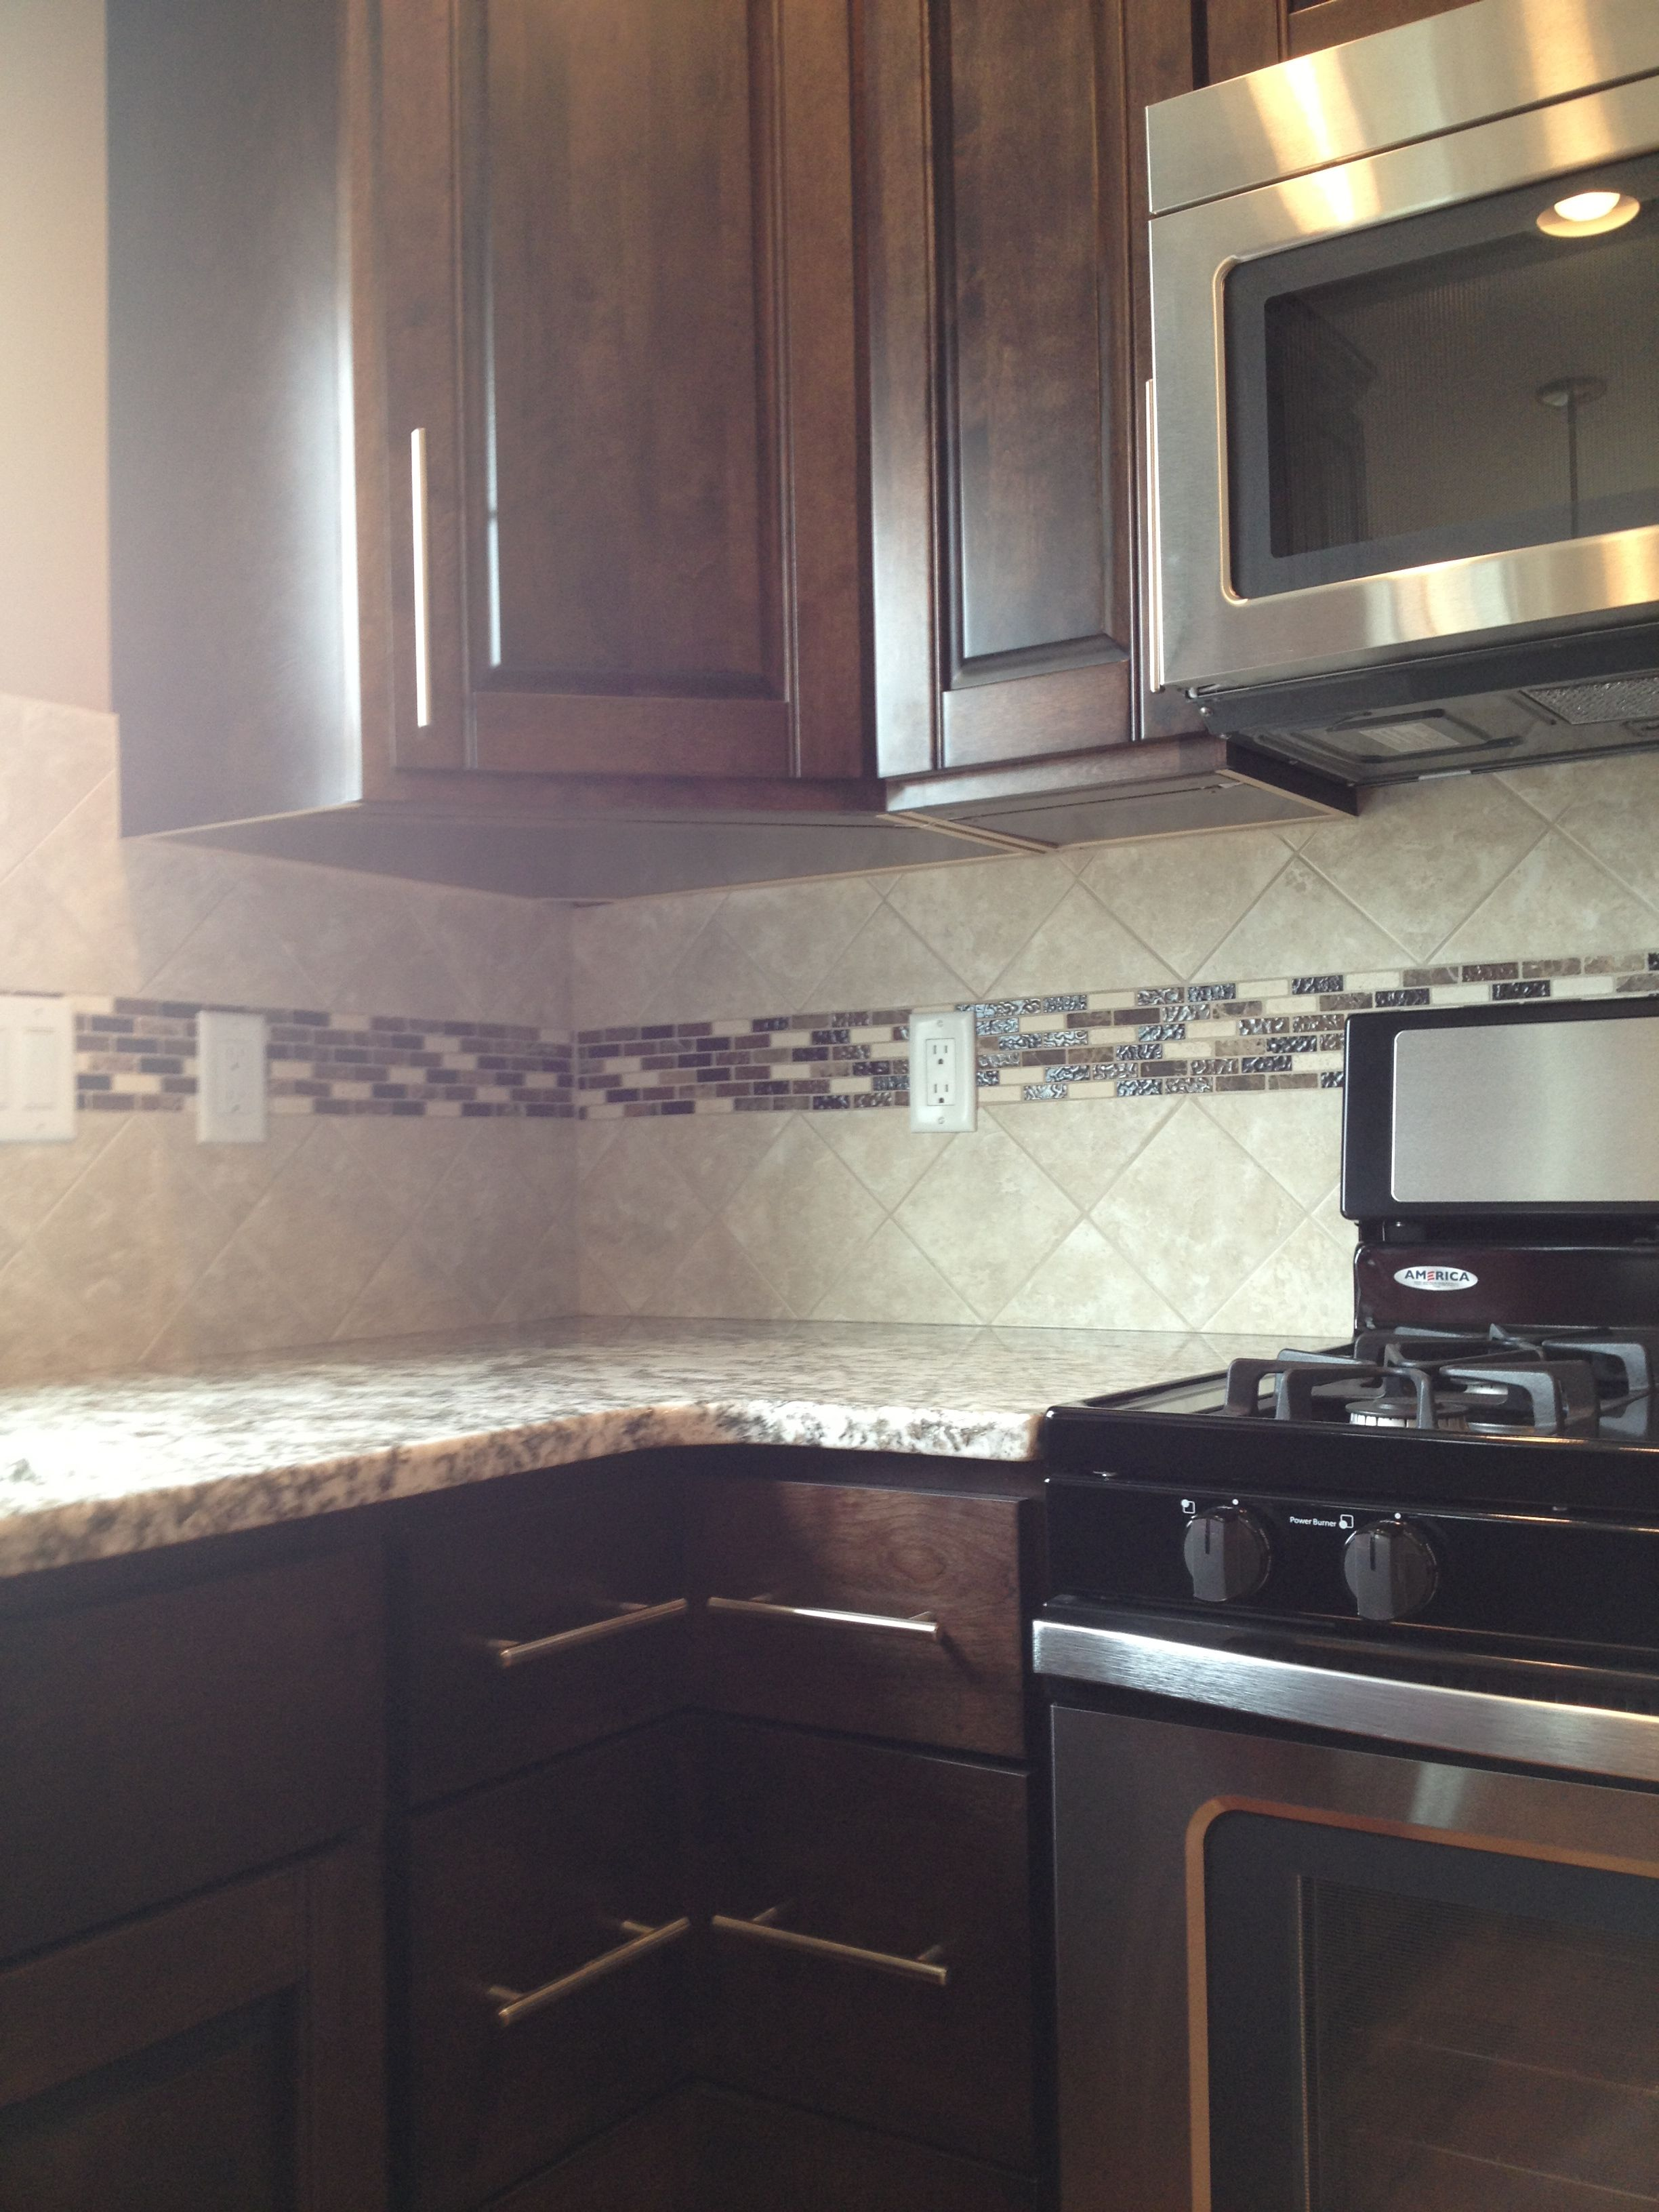 Kitchen backsplash with accent strip